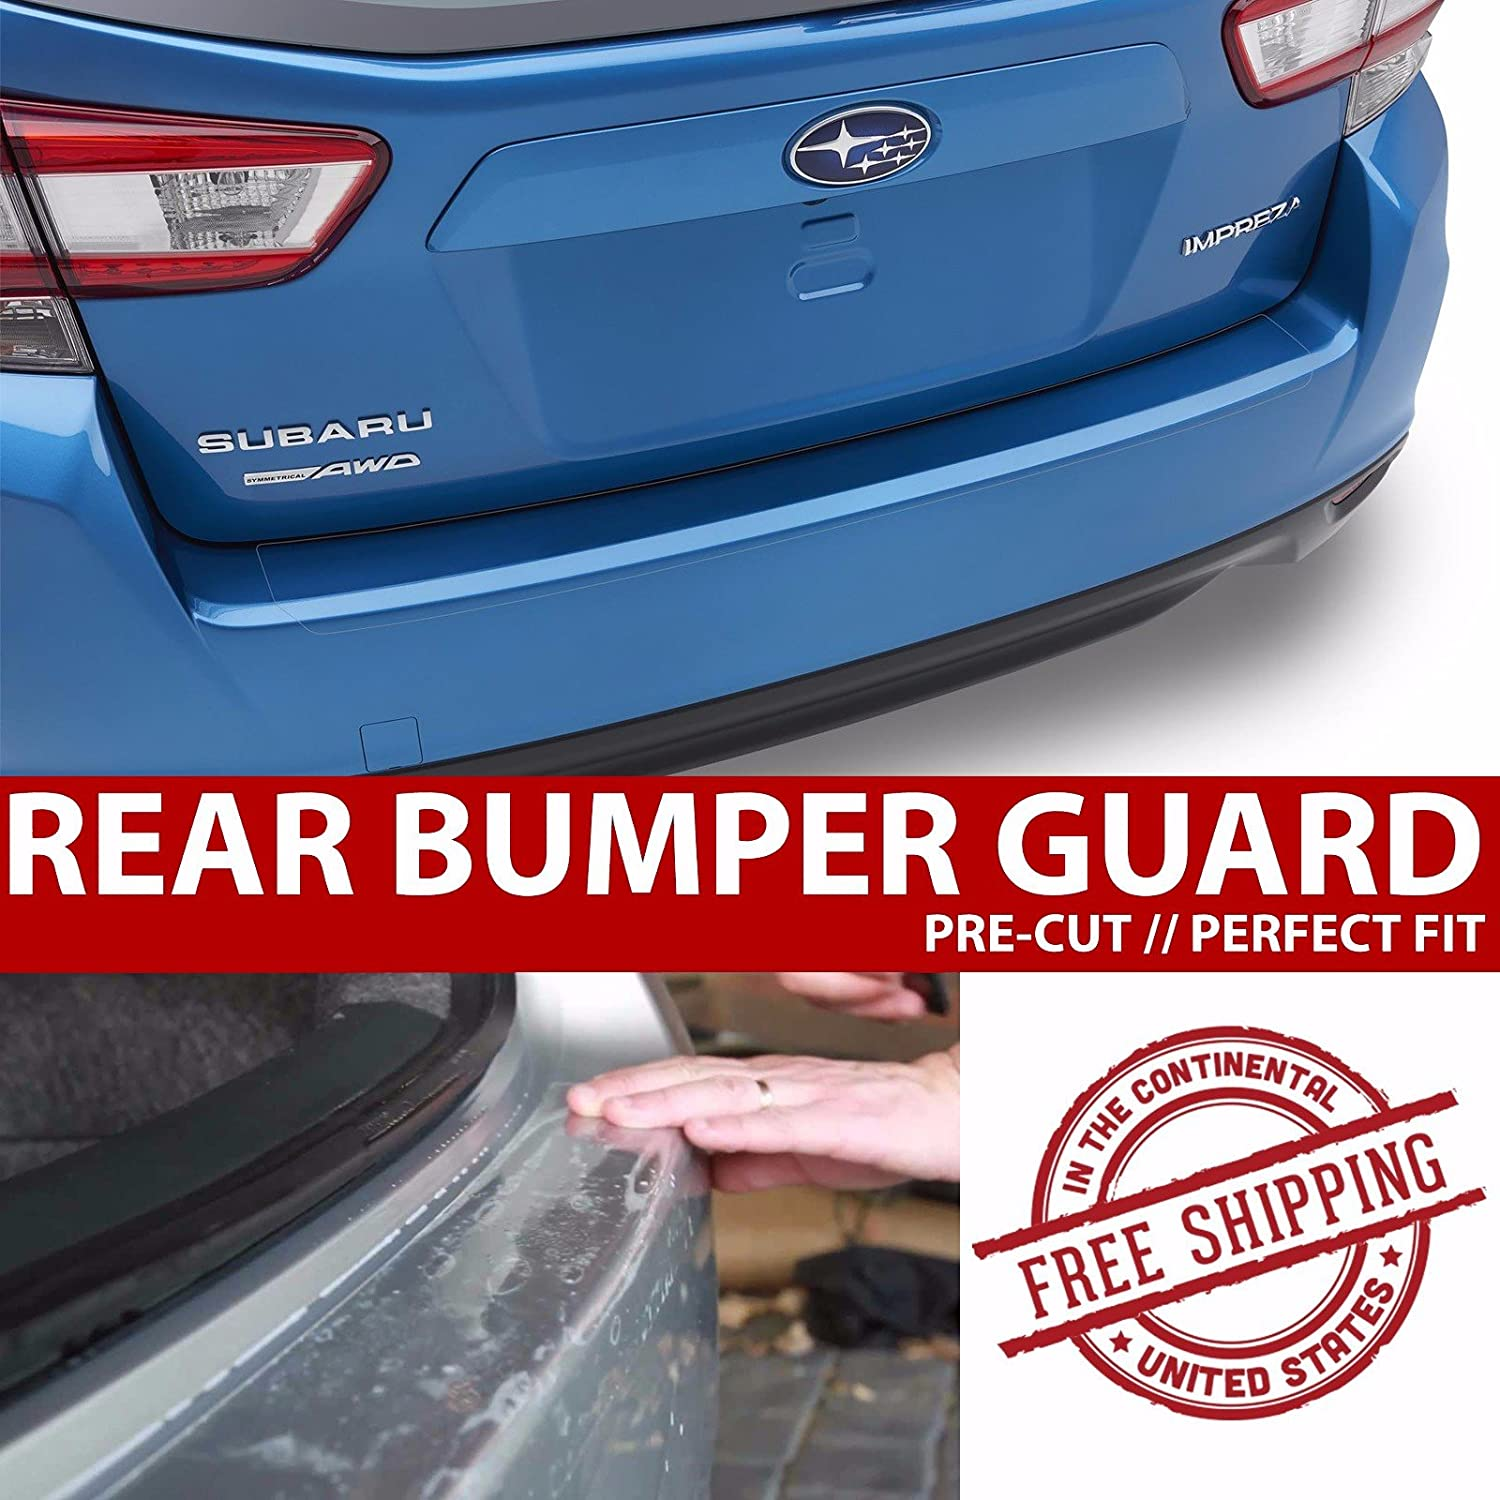 CloudWorks Rear Bumper Trunk Applique Paint Protection Clear Bra Film for 2010-2013 Mazda 3